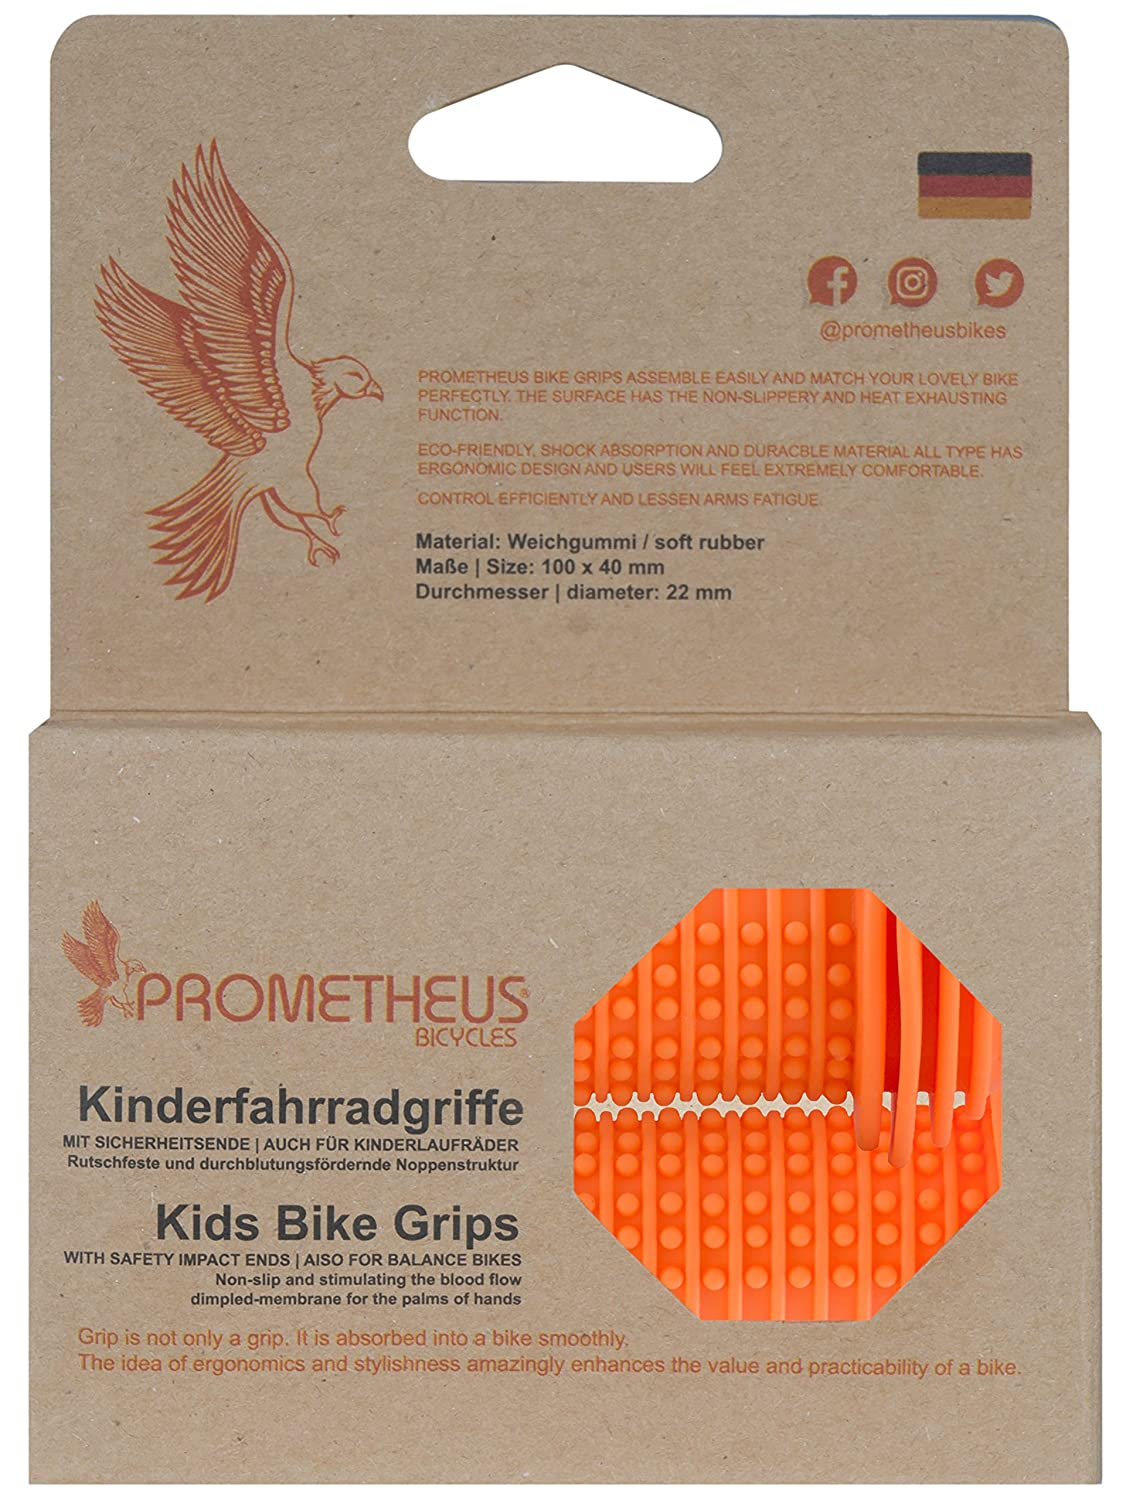 Child Safety Grip with SAFETY IMPACT ENDS Edition 2018 PROMETHEUS BICYCLES® 14TM300 22 mm Handlebar Grips also for balance bike and scooter with SAFETY BAR END PADS PROMETHEUS Kids Bike Grips 1 Pair